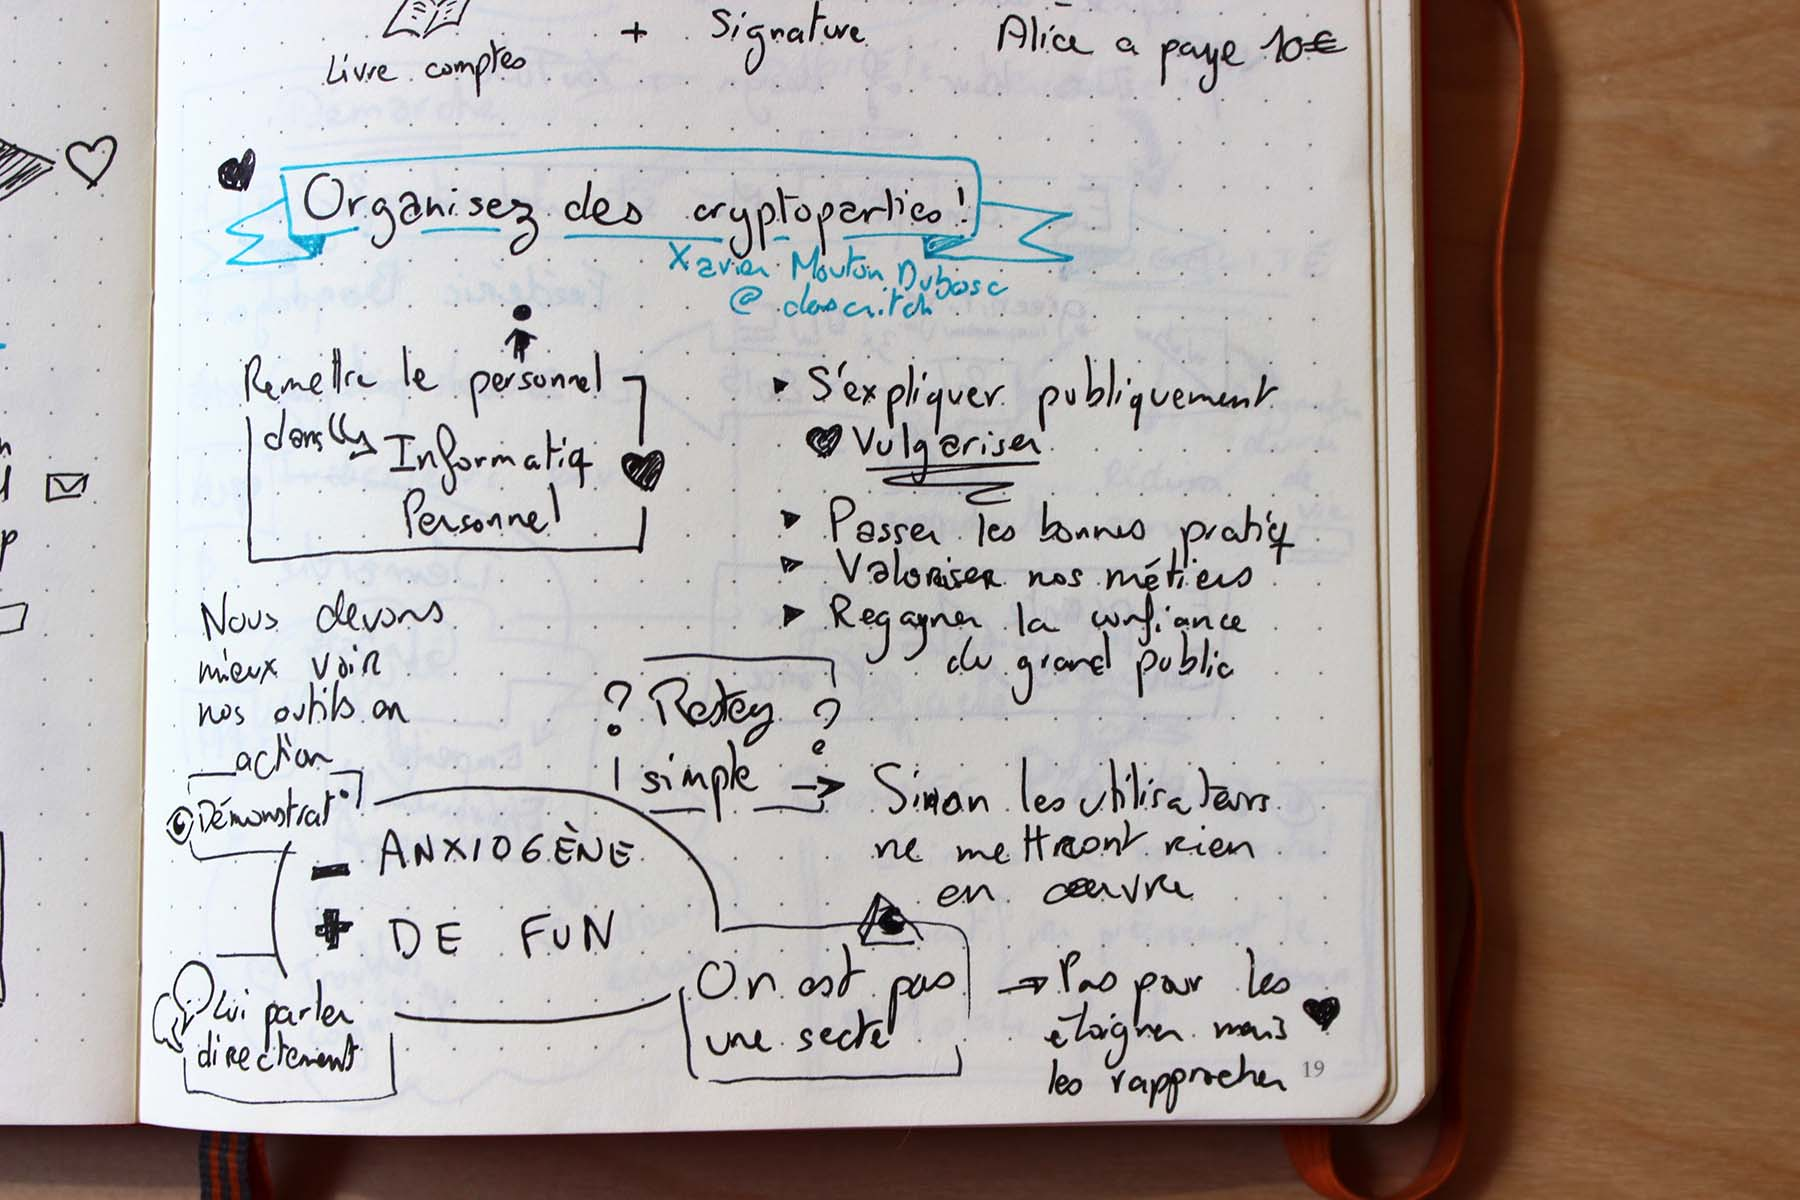 Sketchnote: Paris Web · Organisez des cryptoparties !